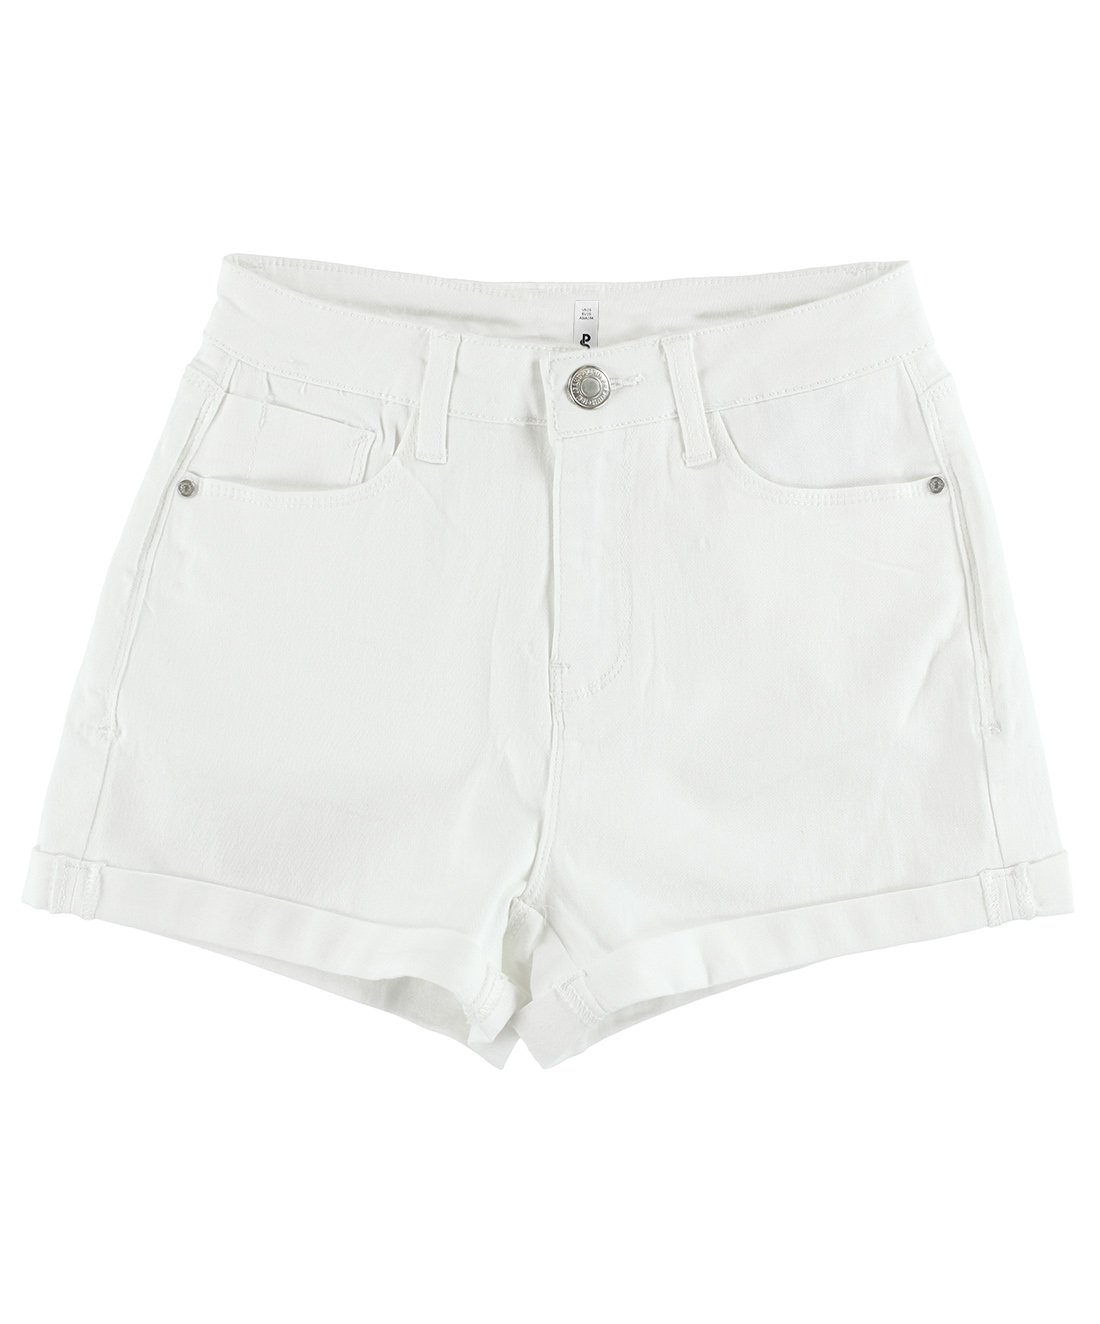 BLBD Women's Casual Stretchy High Waisted Shorts White Large